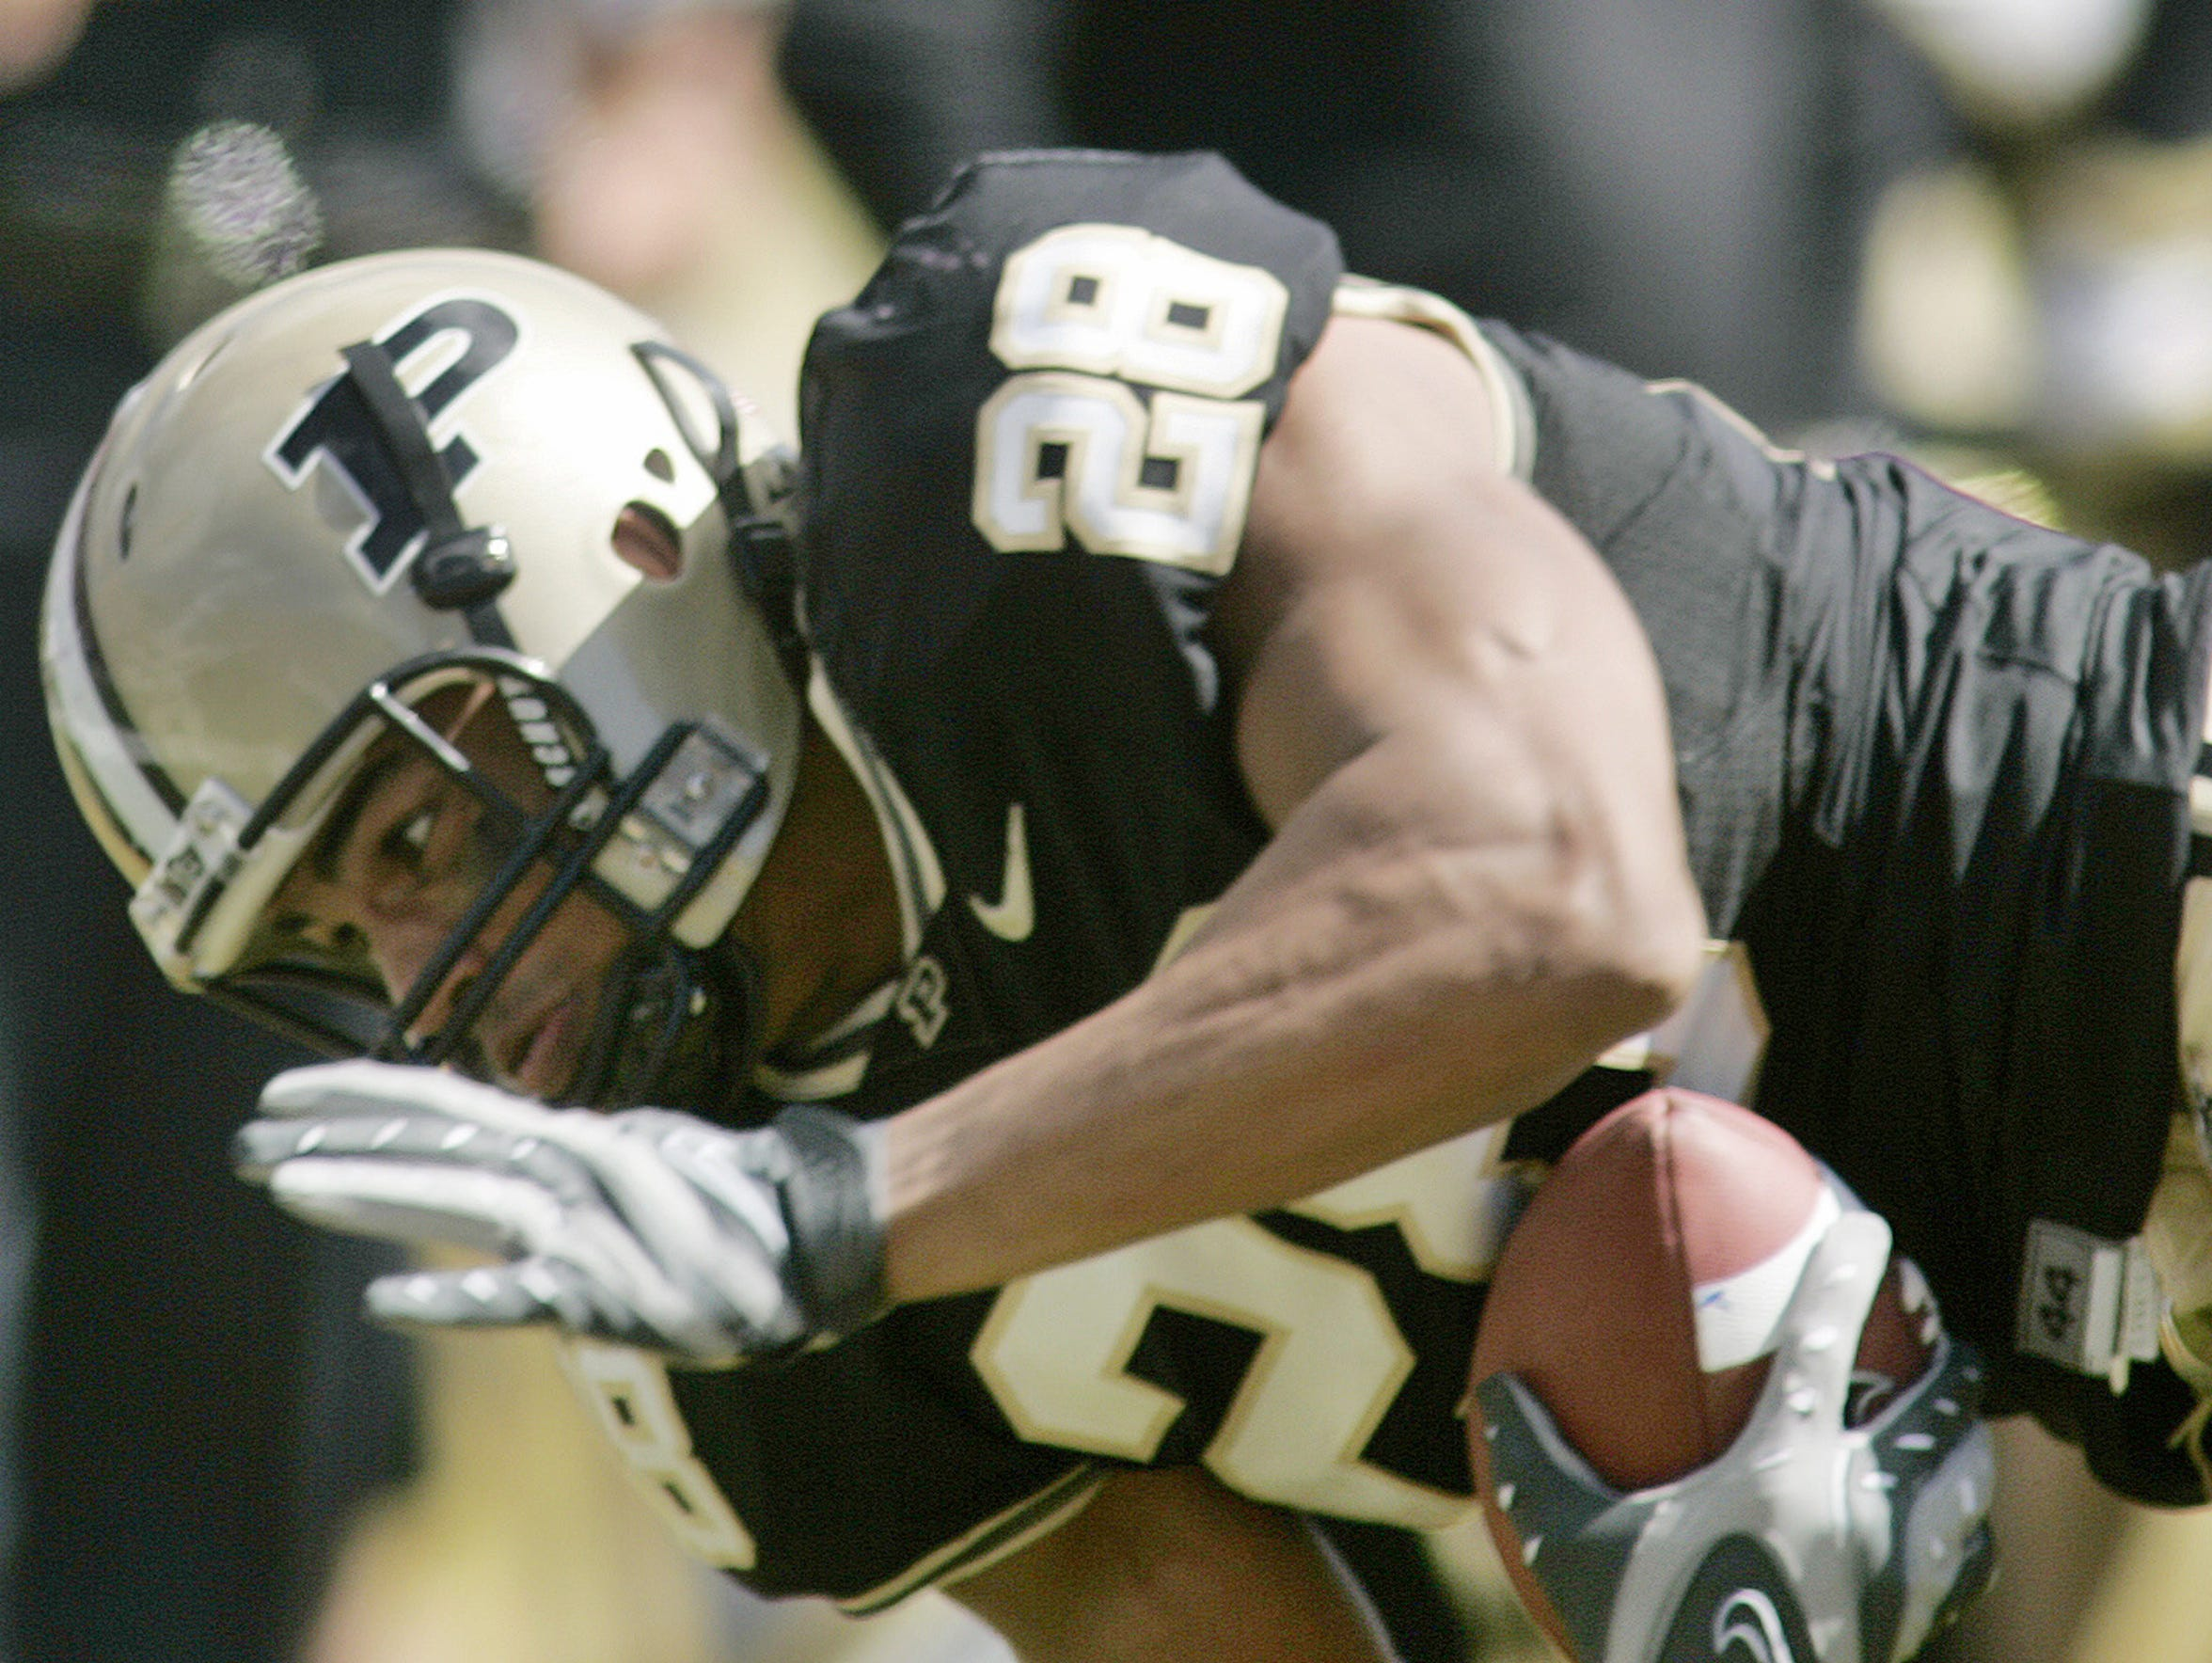 Purdue tight end Dustin Keller comes down with a touchdown